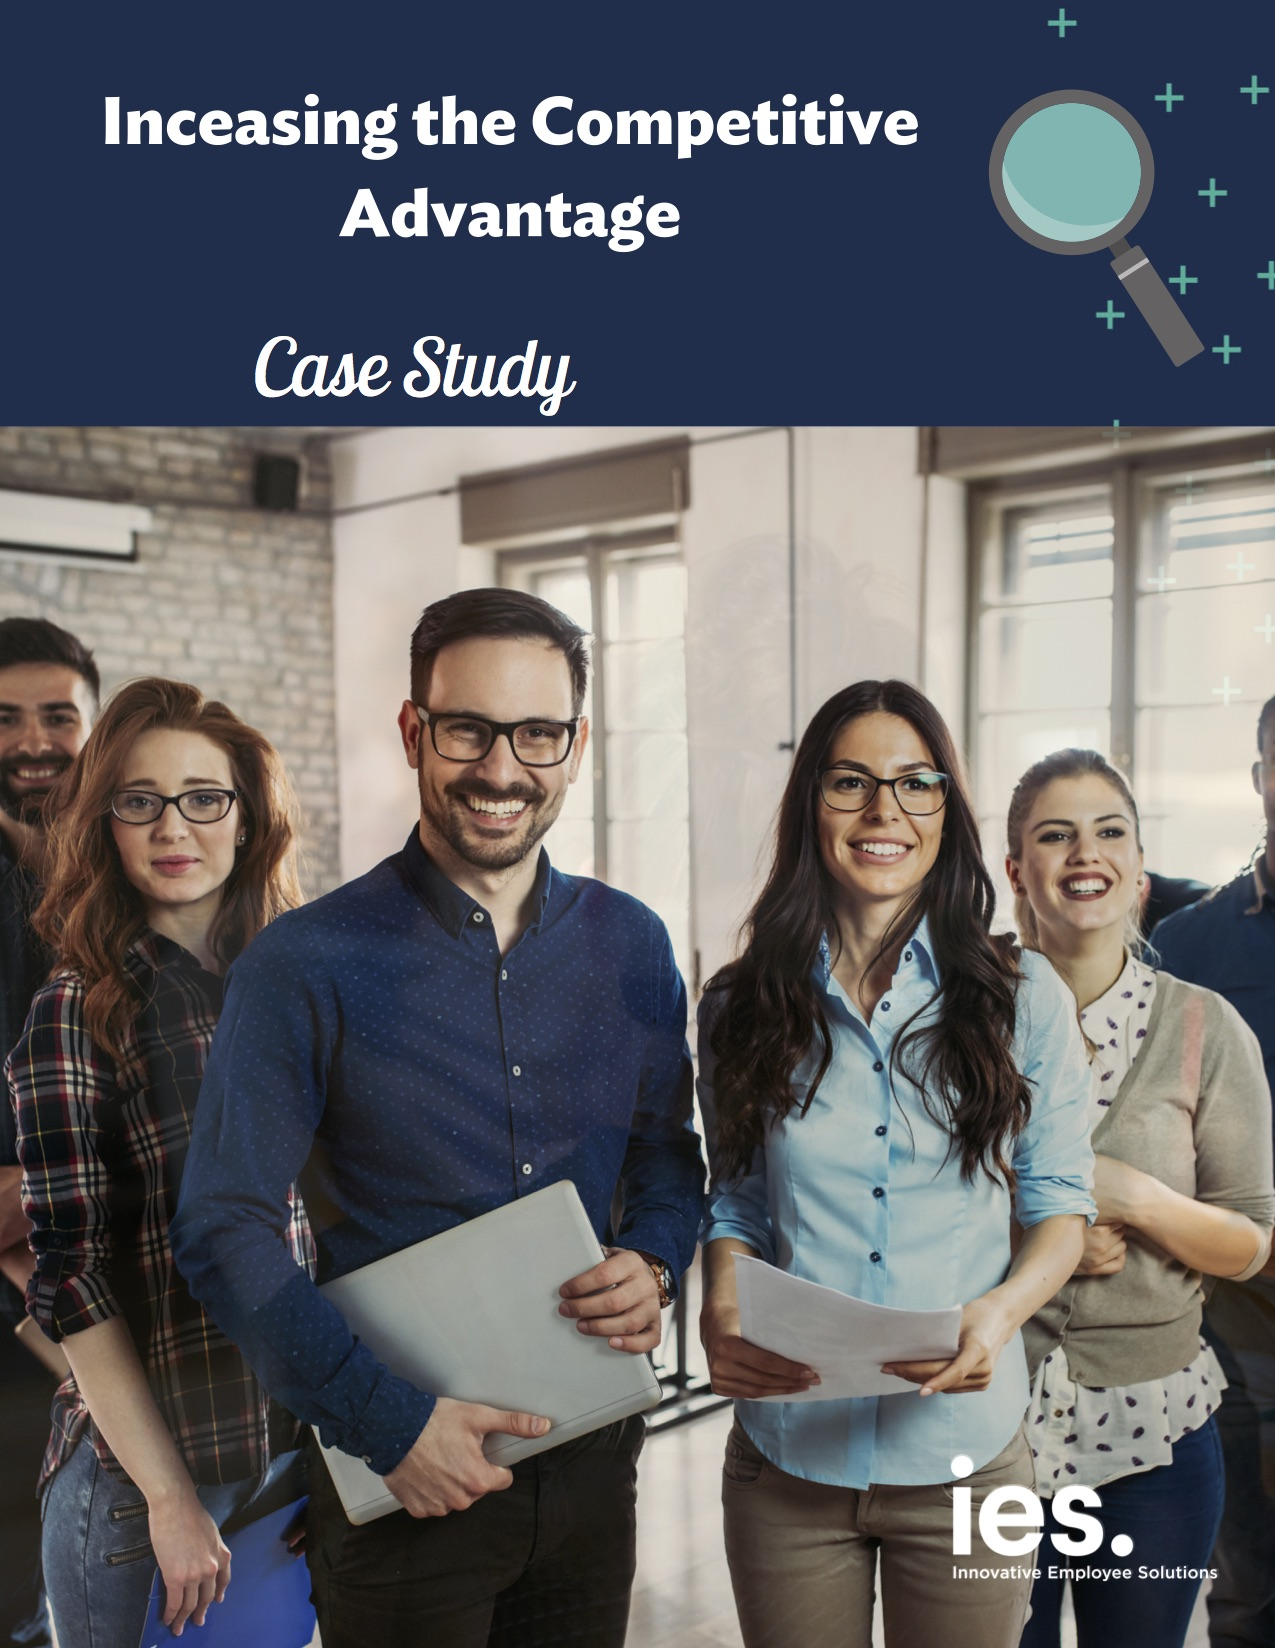 Case Study - Increasing the Competitive Advantage